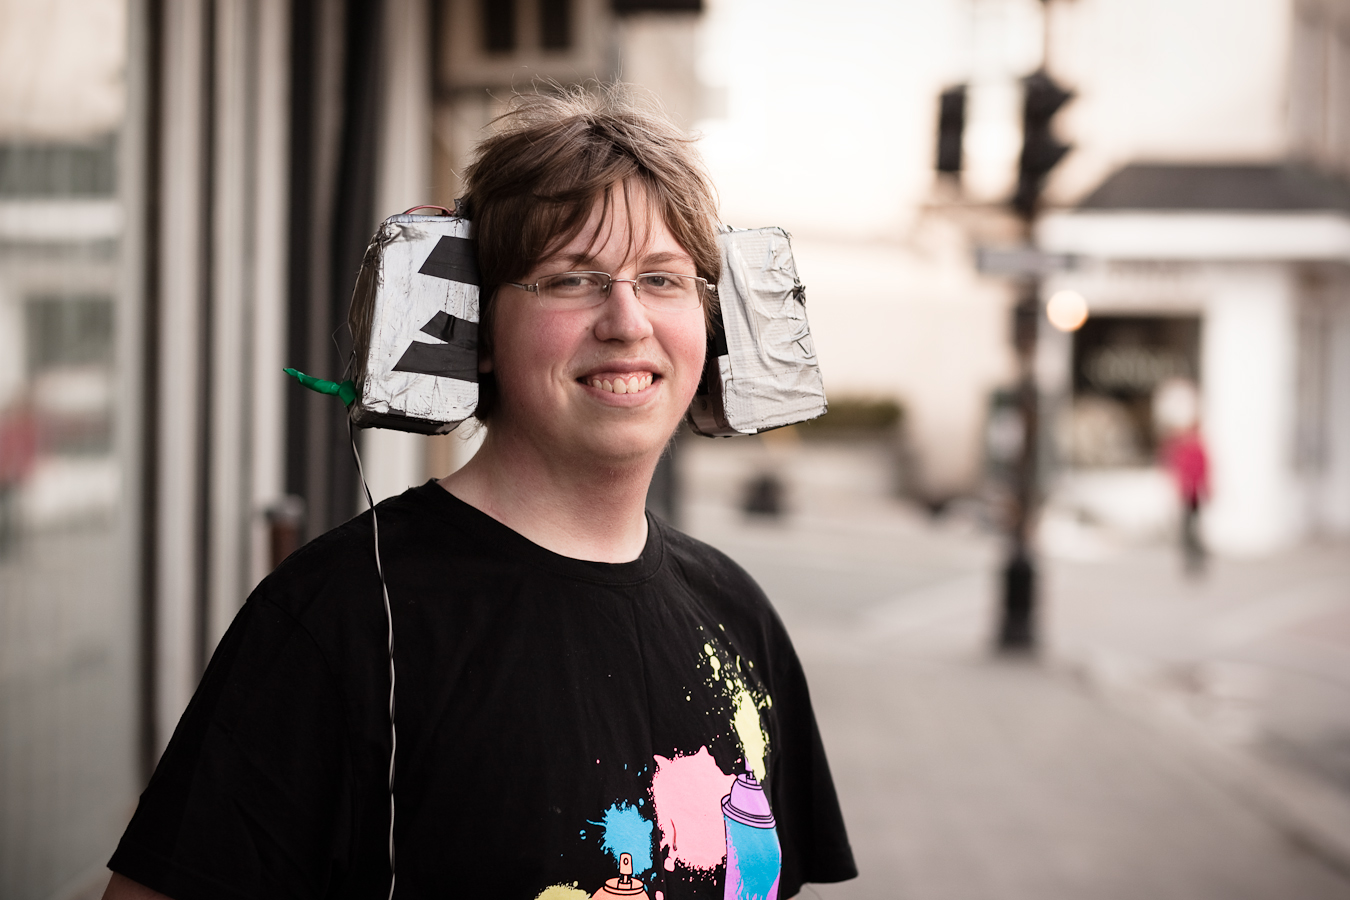 Awesome kid with homemade headphones - Water Street